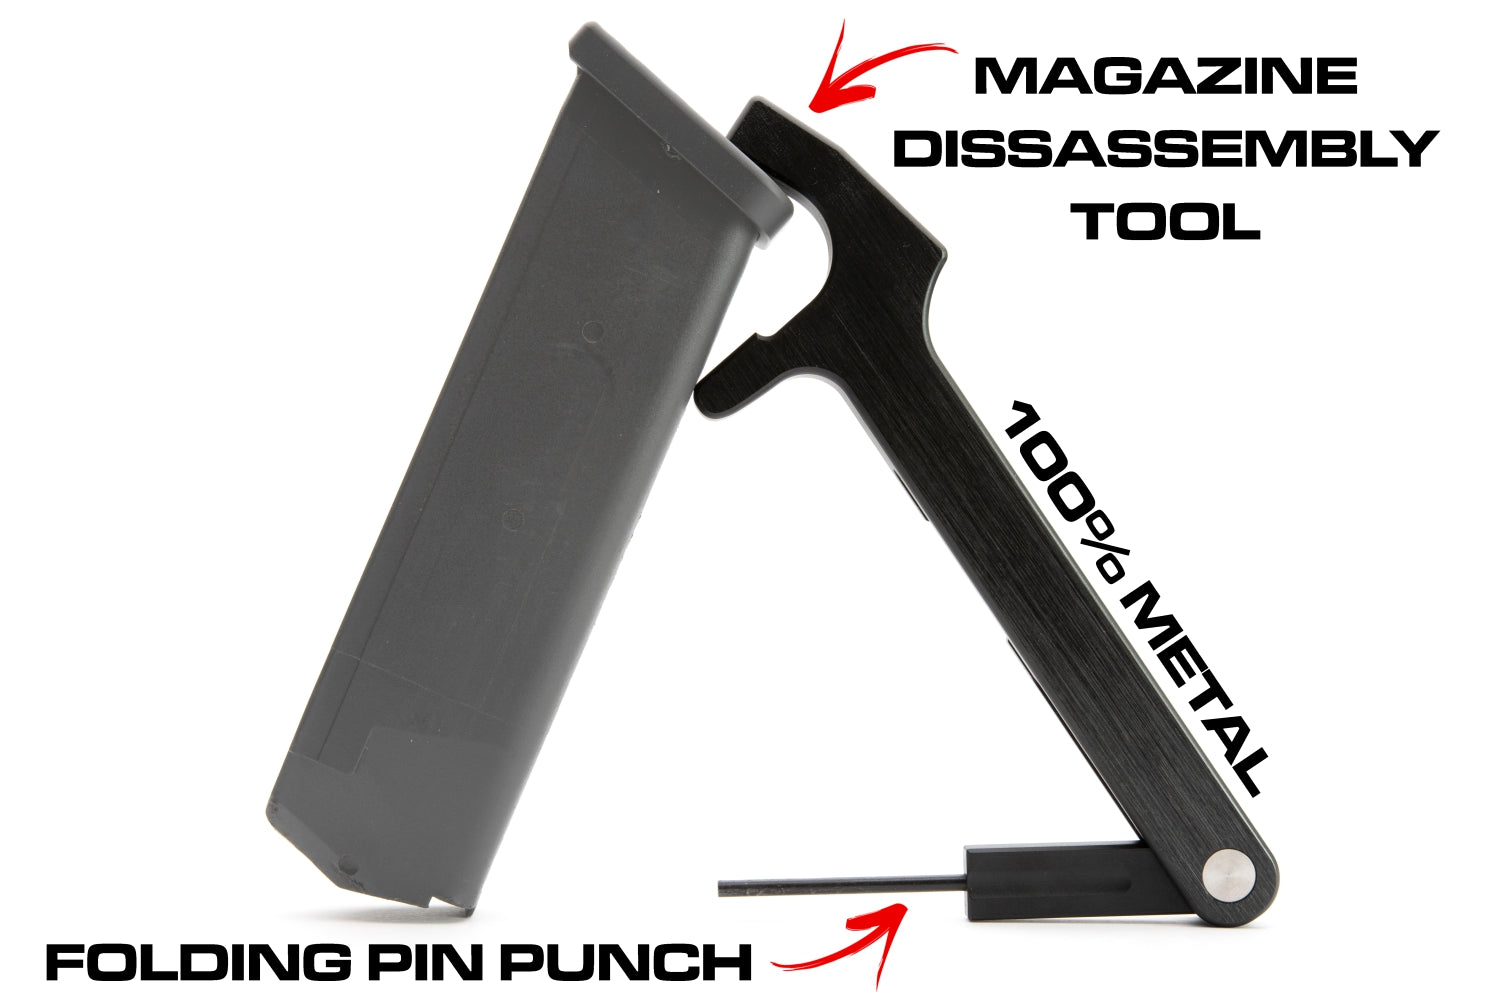 MFBA Magazine Disassembly and Pin Punch Combo Tool